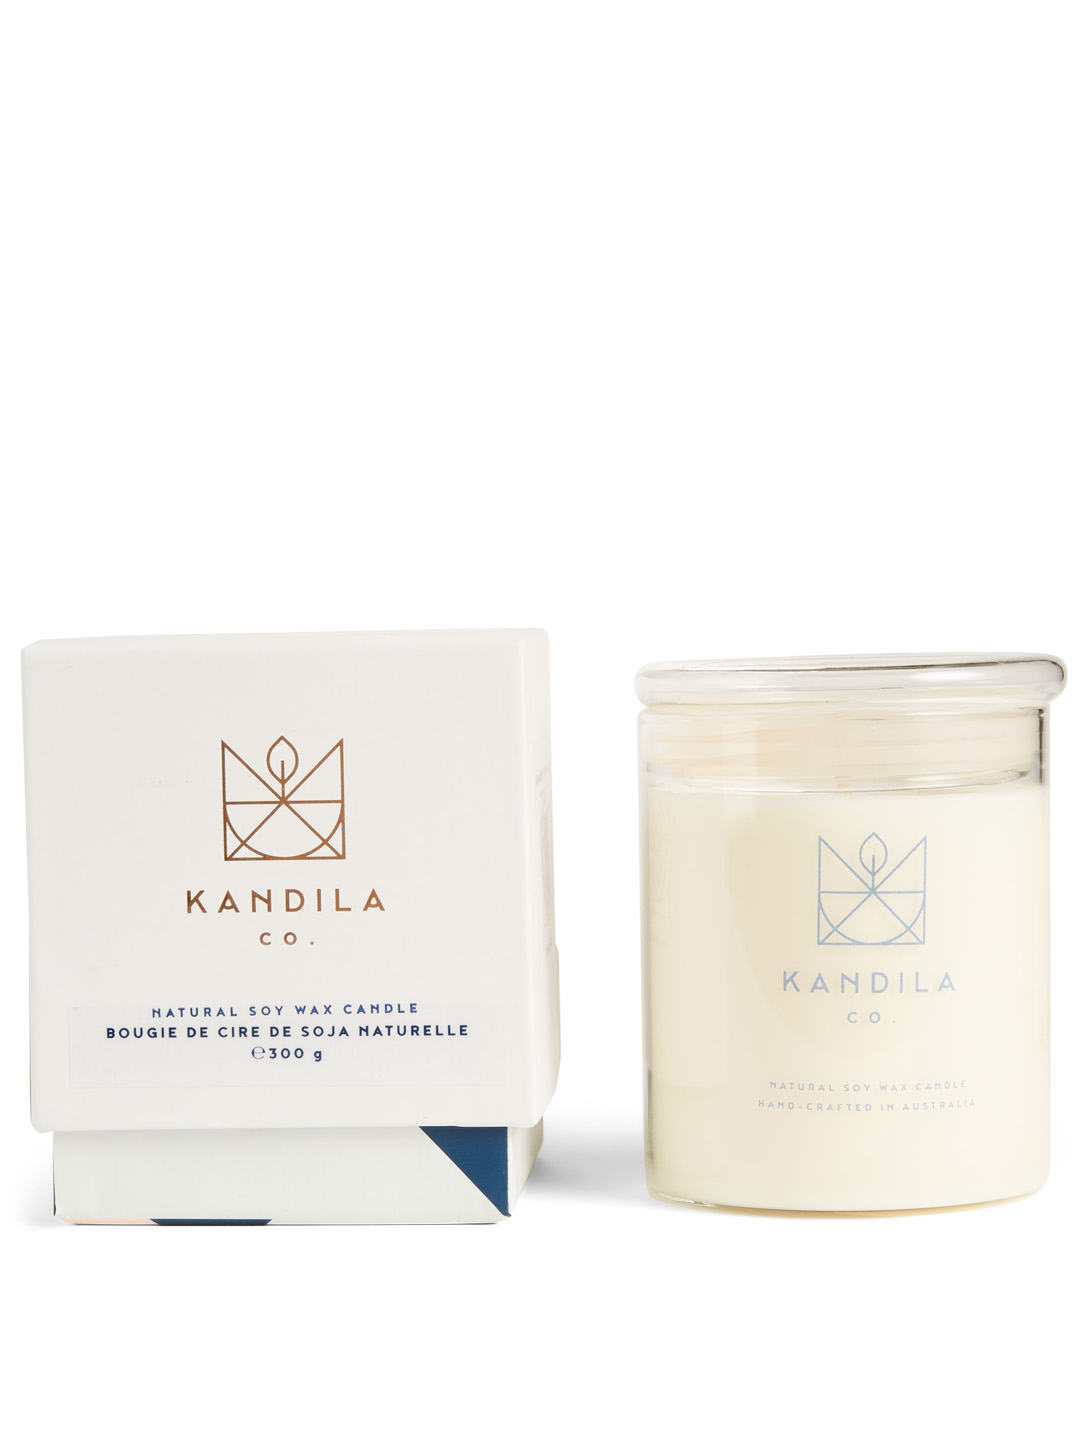 KANDILA CO. Exotic Black Tea Soy Wax Candle H Project